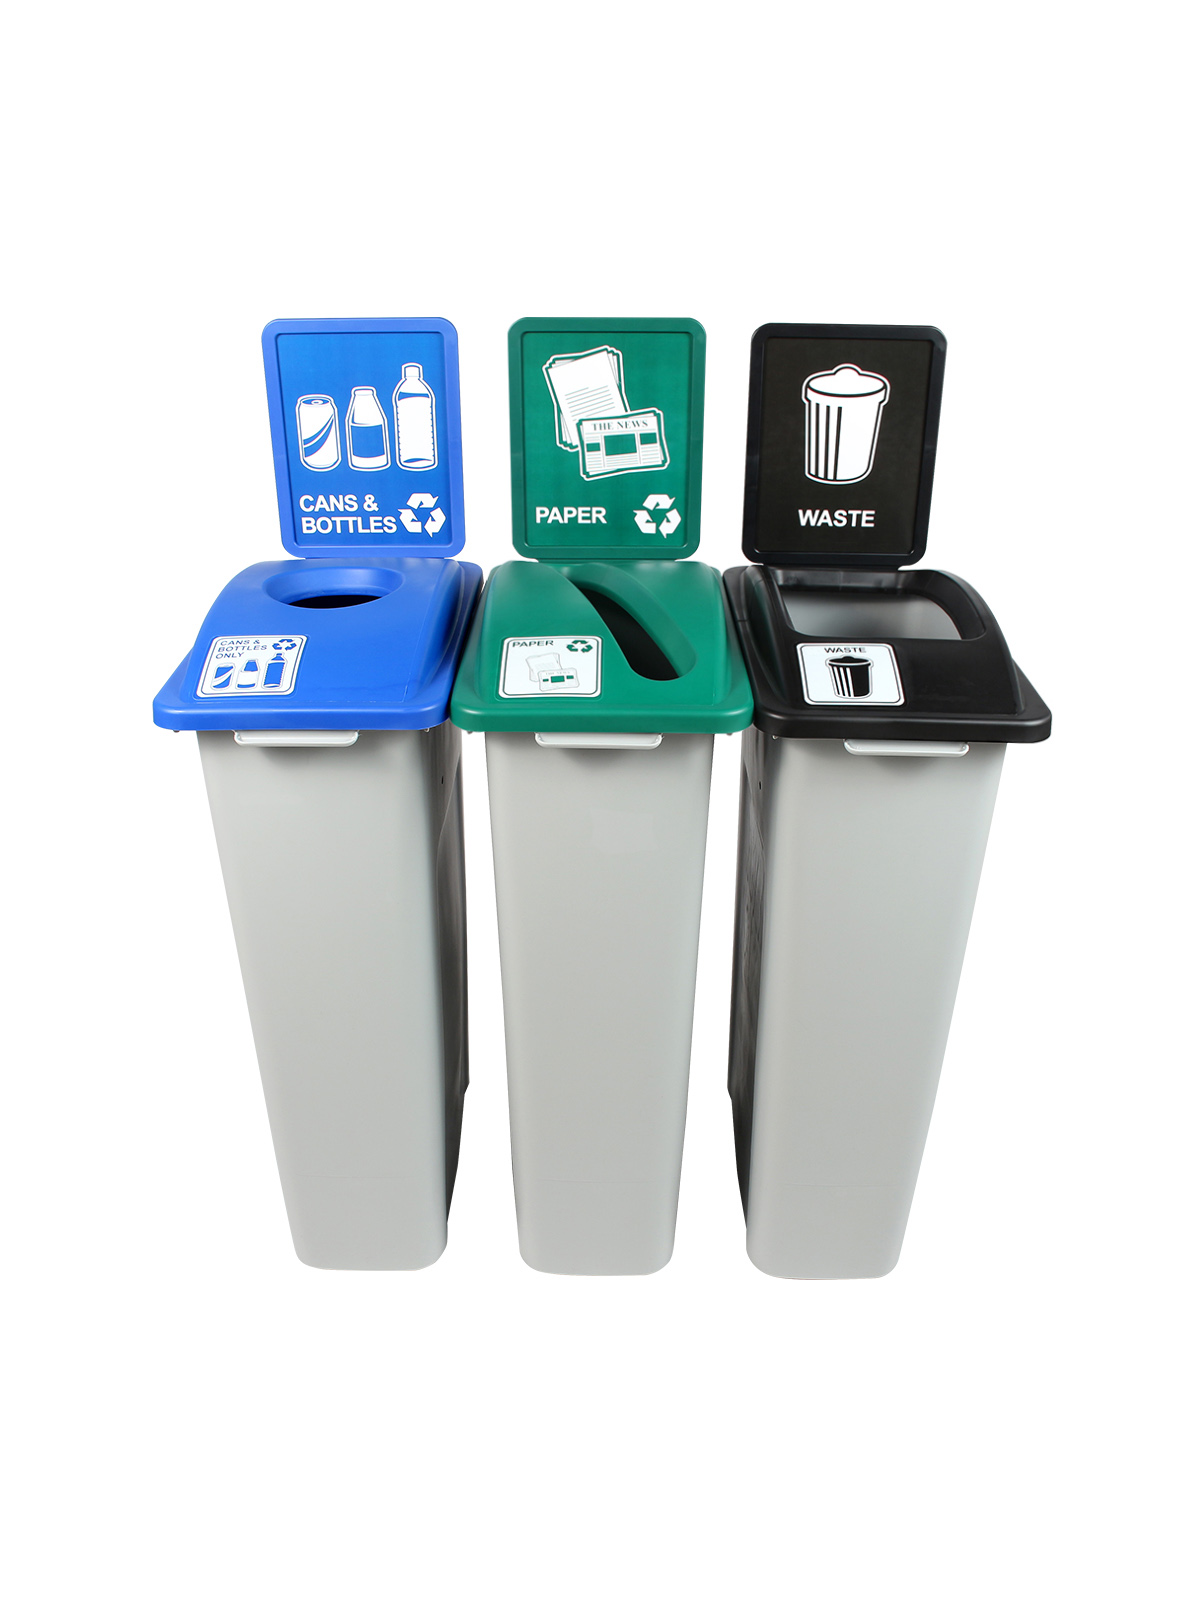 WASTE WATCHER - Triple - Pennsylvania Compliant - Cans & Bottles-Paper-Trash - Circle-Slot-Full - Grey-Blue-Green-Black title=